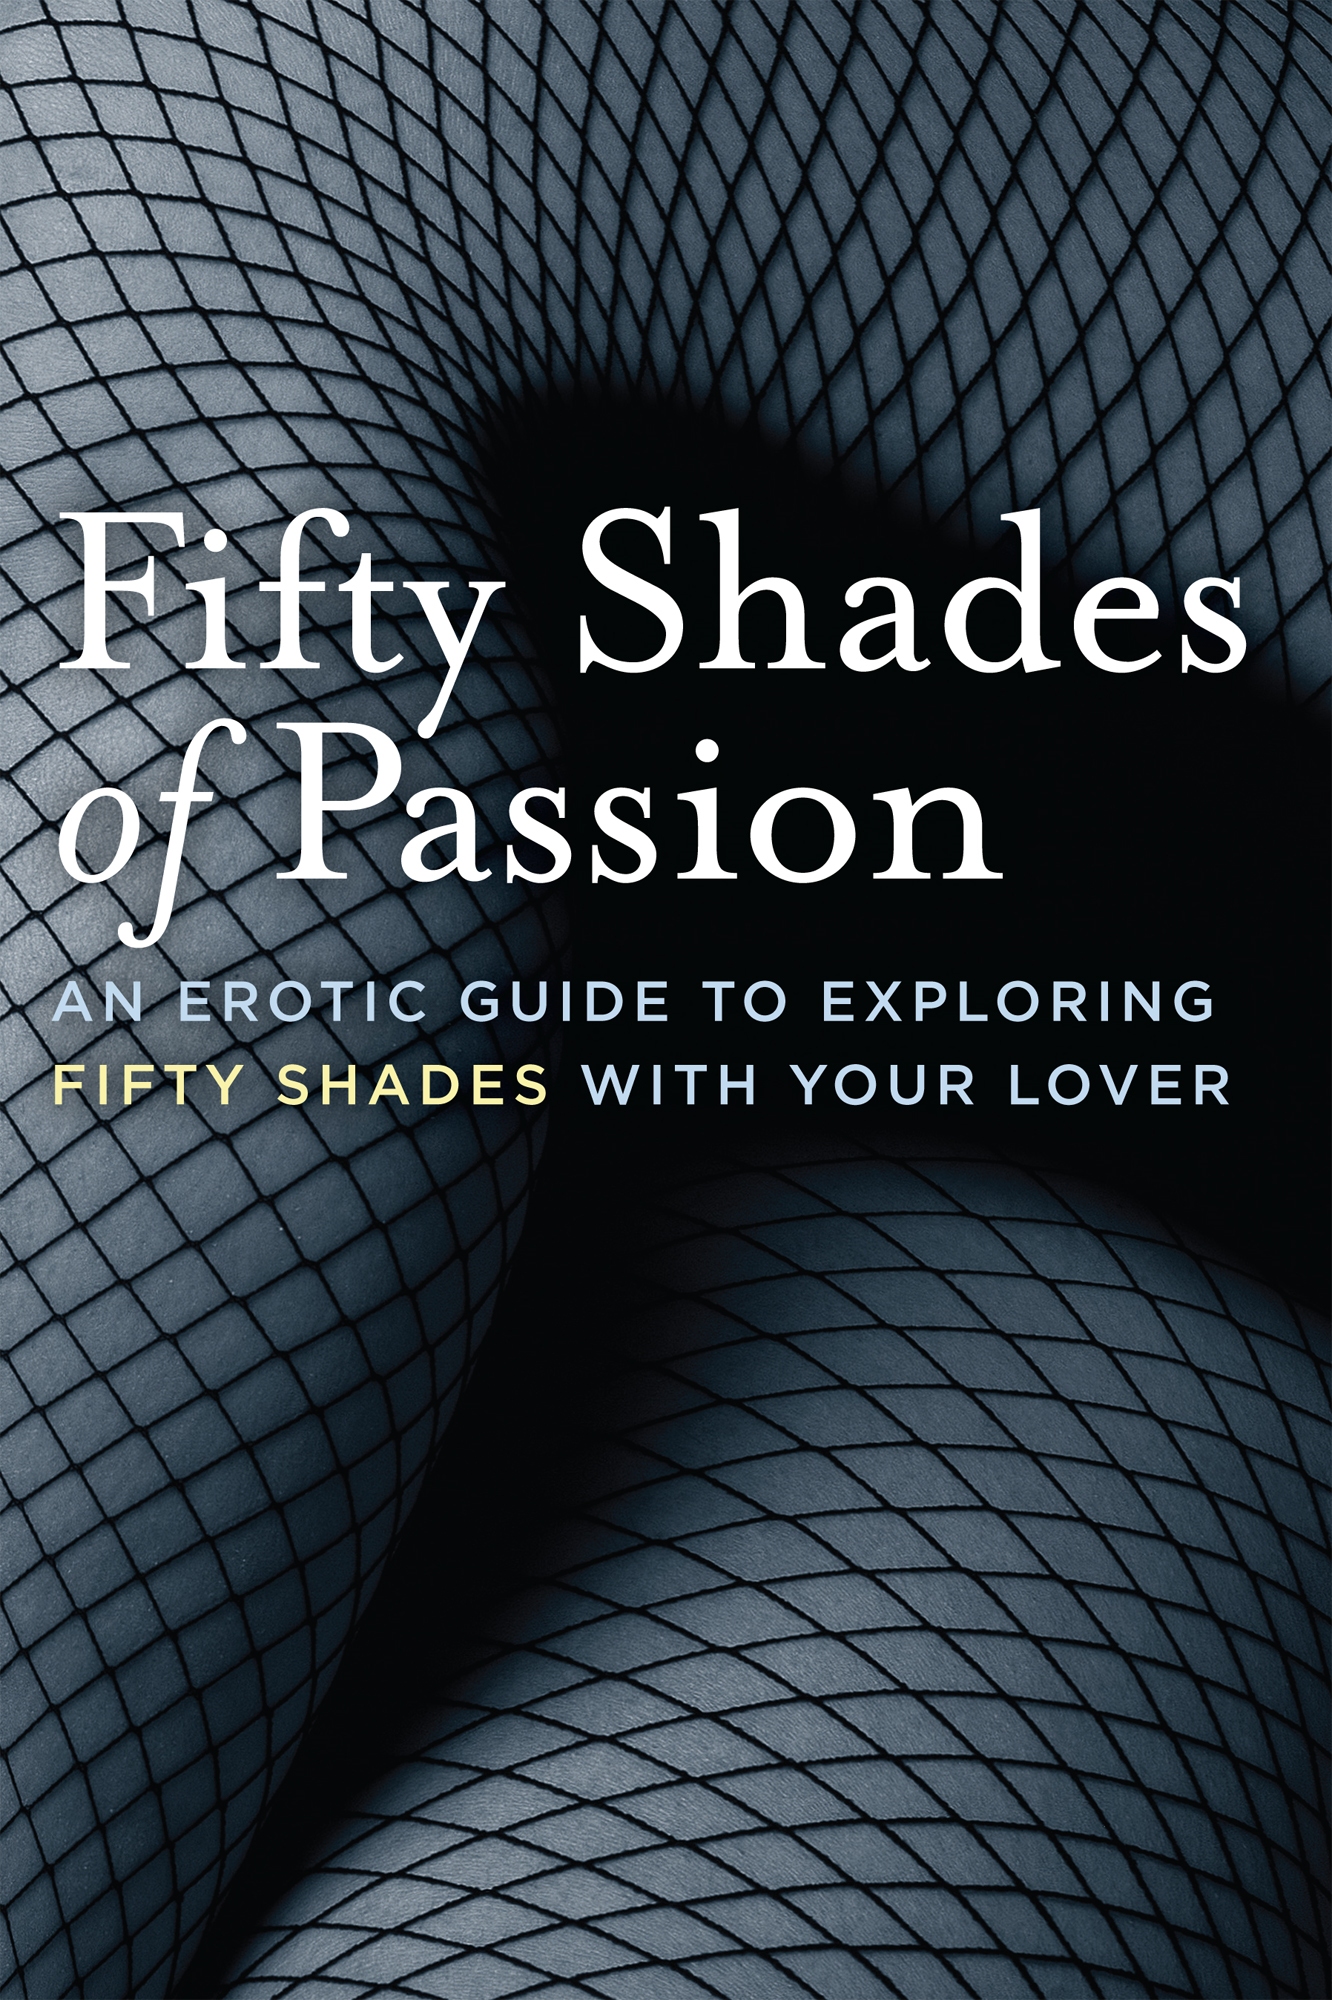 Hyacinth Books - Fifty Shades of Passion